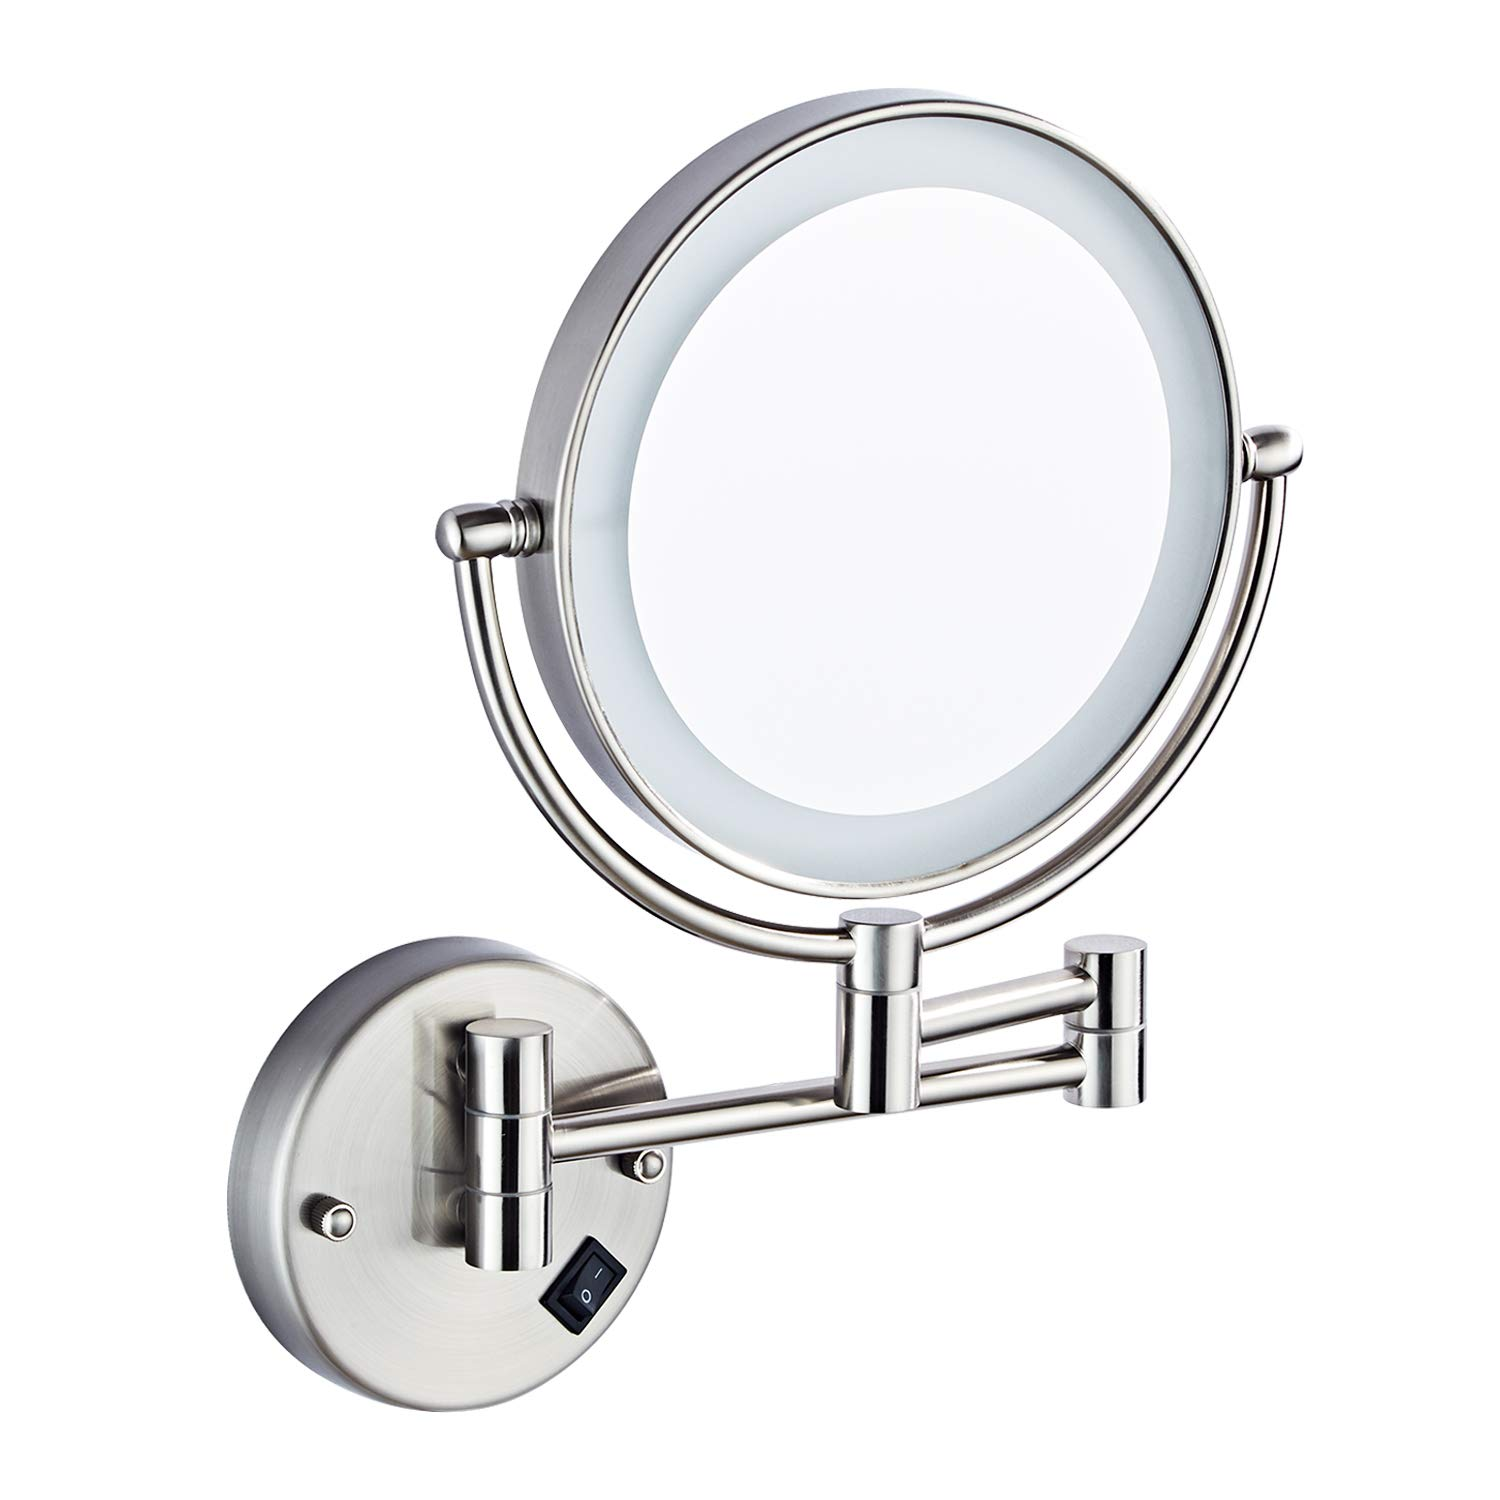 Halo Sanitary 8 Wall Mounted Led Lighted Mirror, 5X Magnification Mirror with Switch Button, Extendable Vanity Mirror with 360 Degree Rotation for Bathroom Hotel Spa